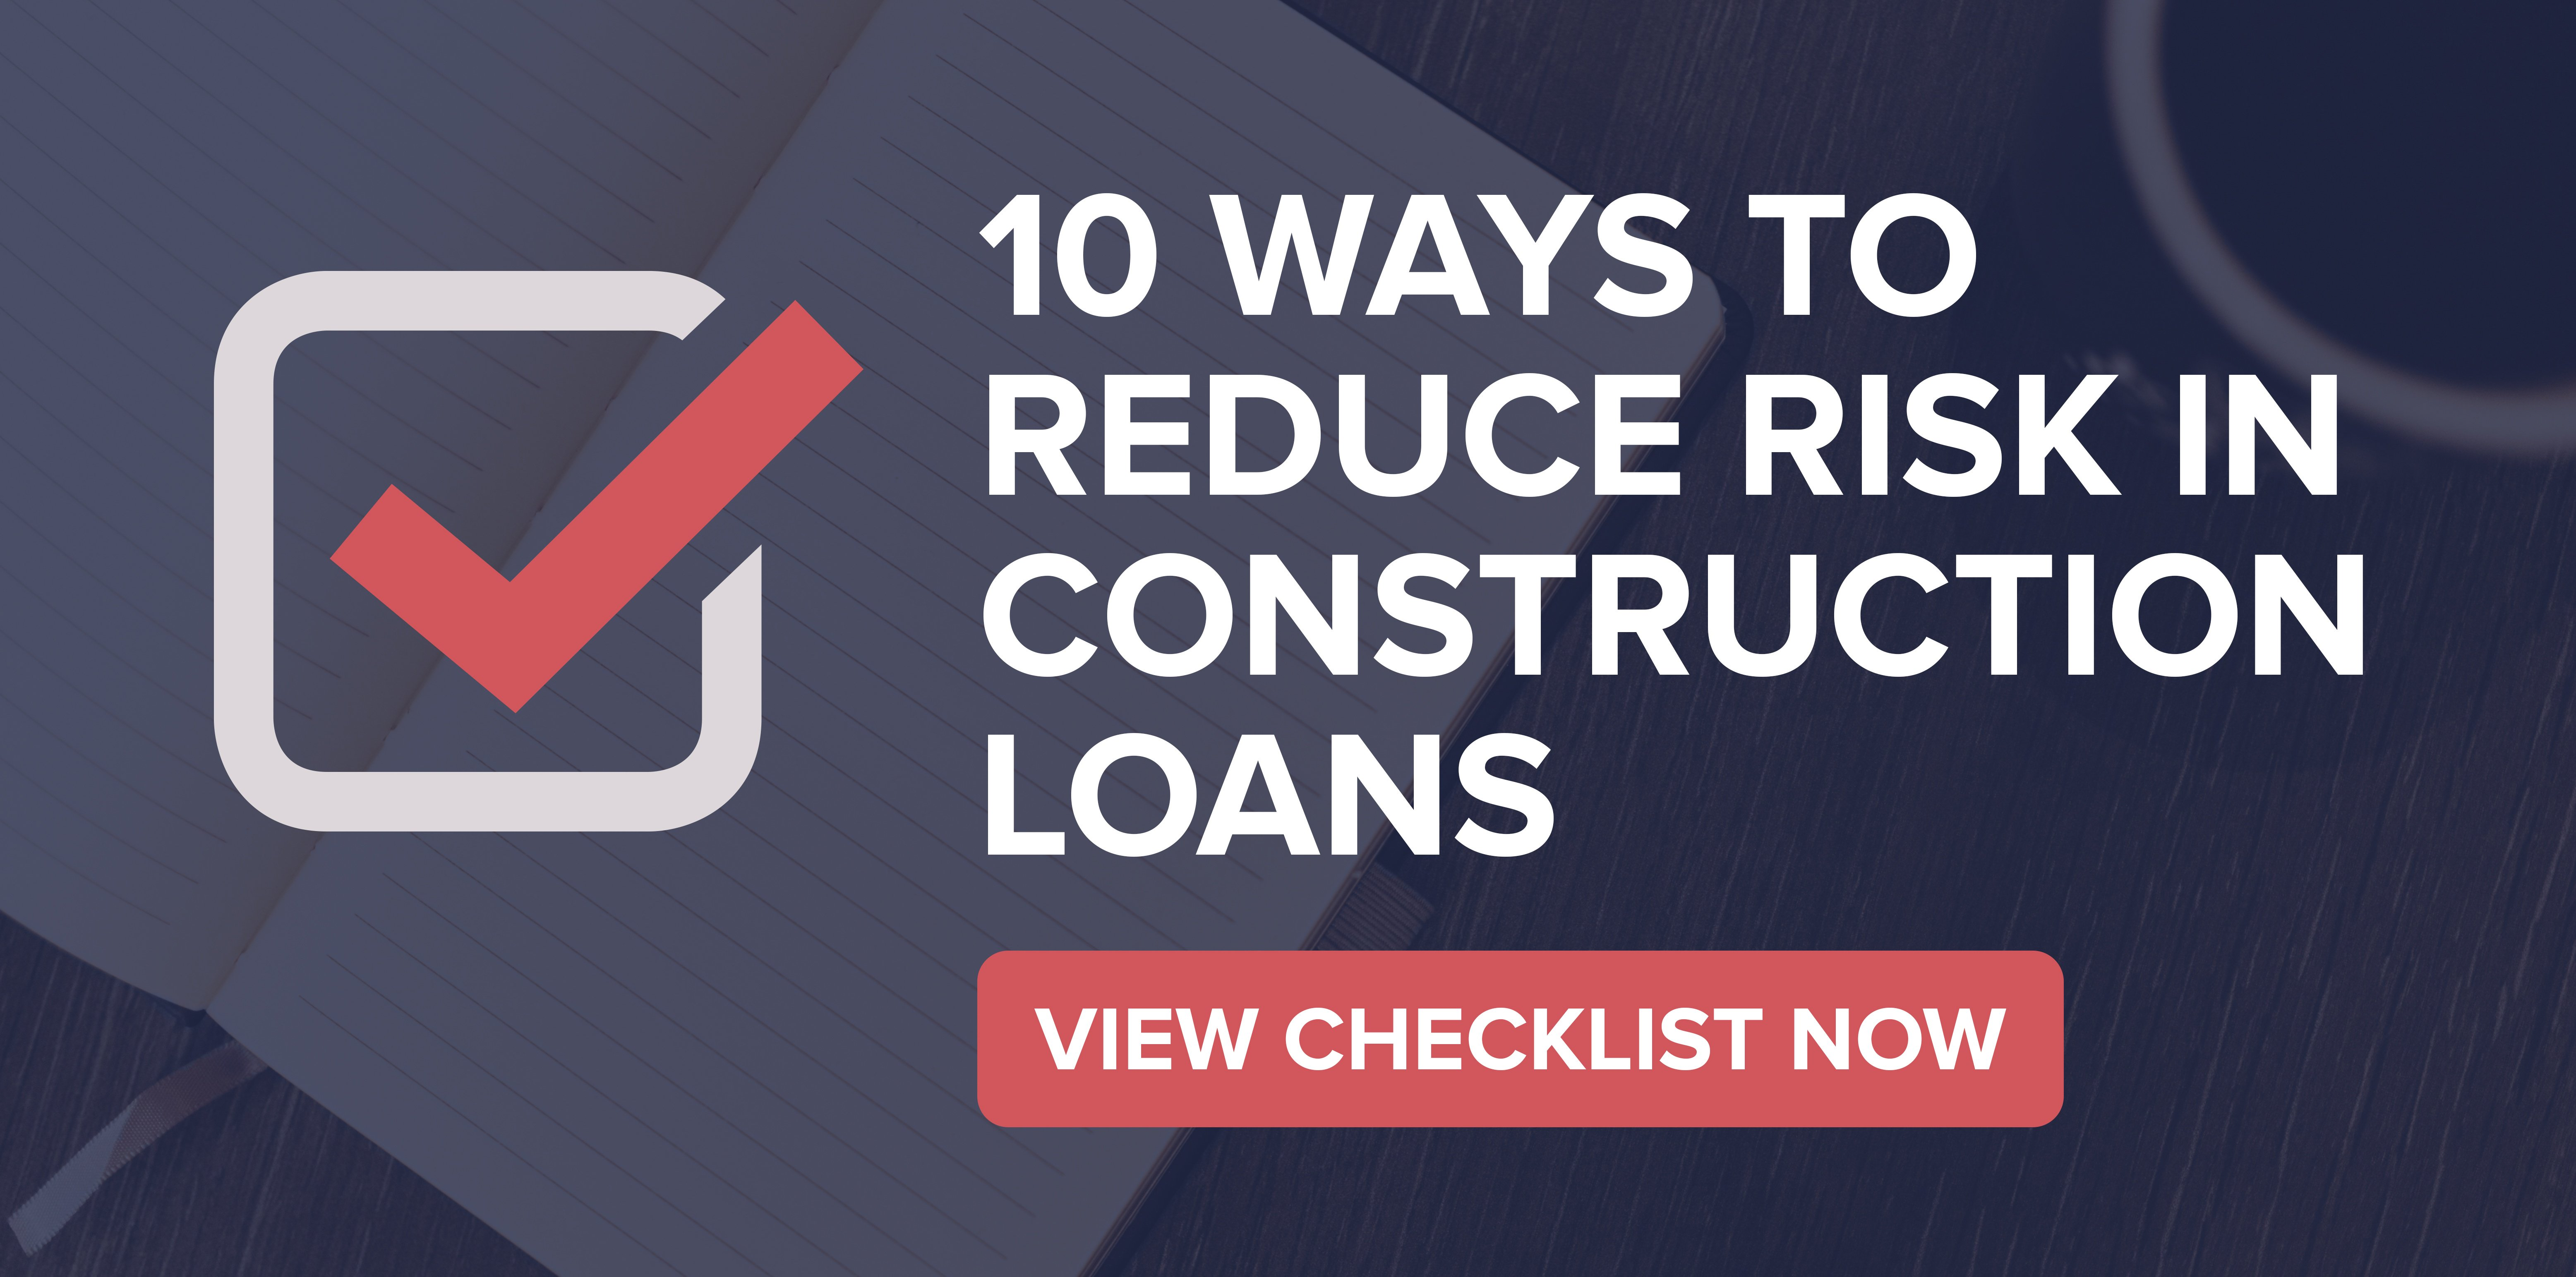 10 ways to reduce construction lending risk button